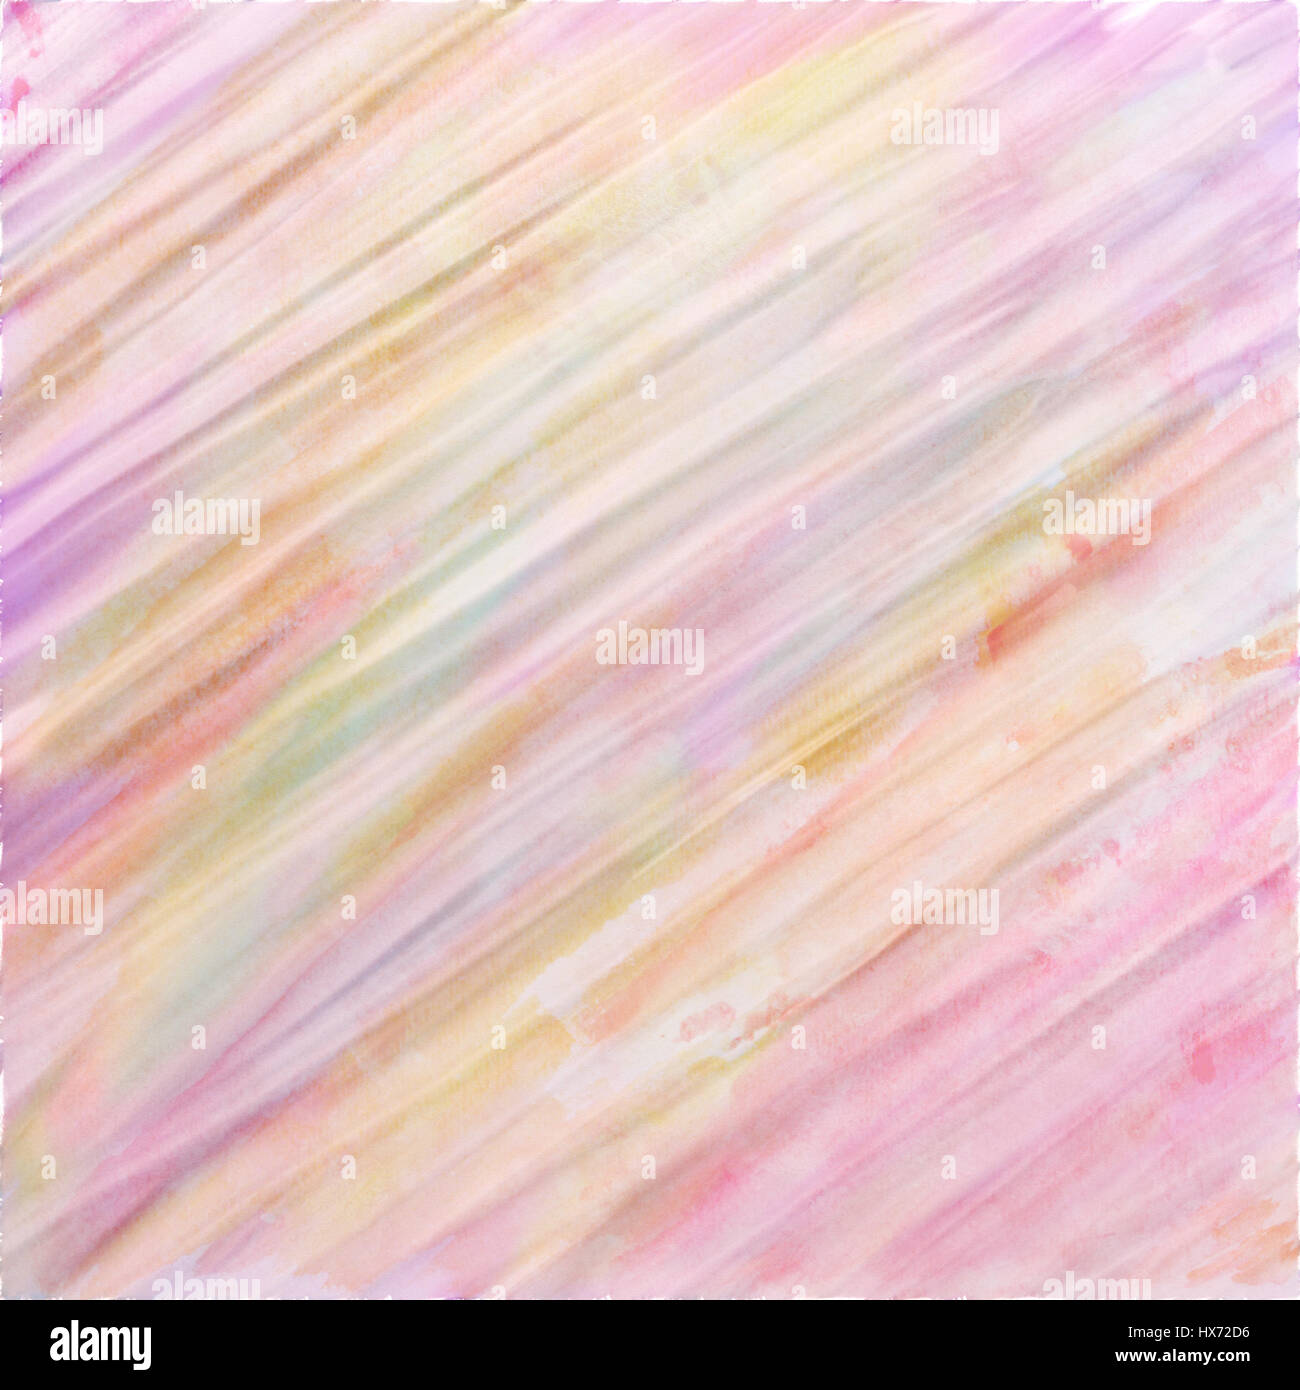 Digital Watercolor Background Paint In Pretty Soft Pastel Colors